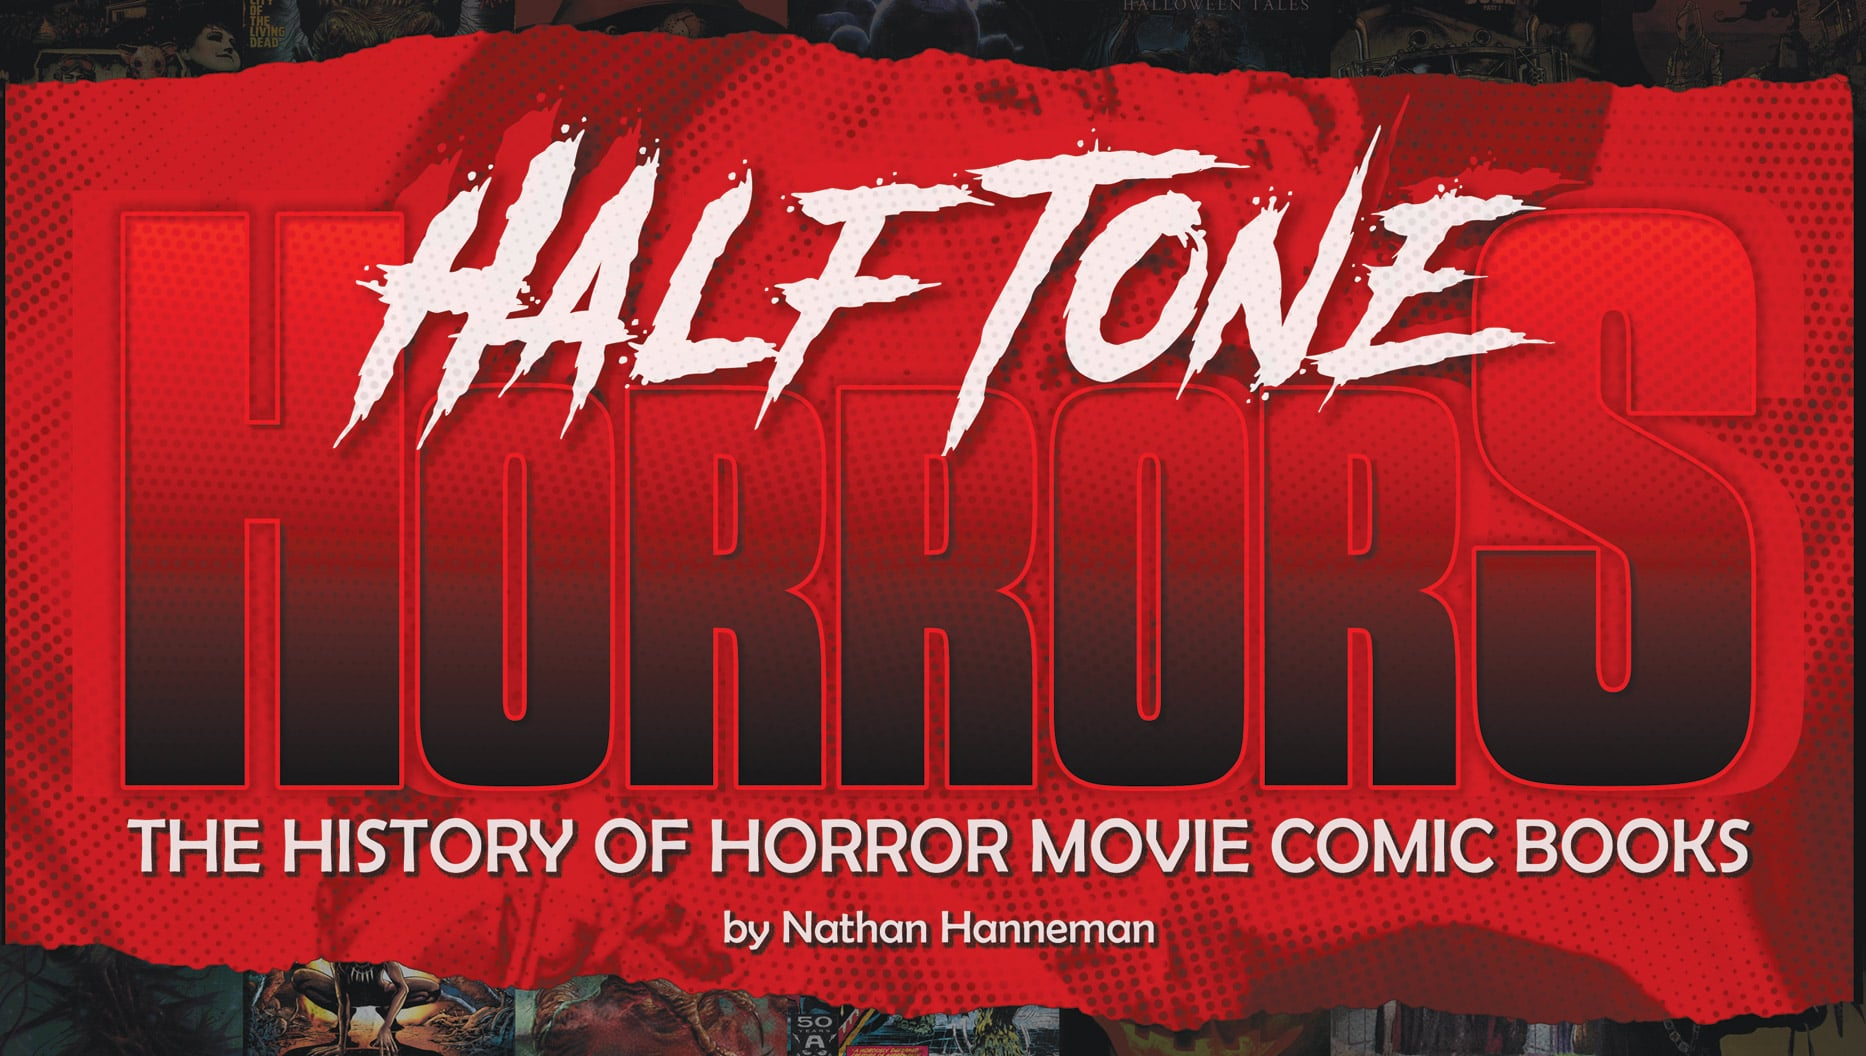 Halftone Horrors: The History of Horror Movie Comic Books Announced